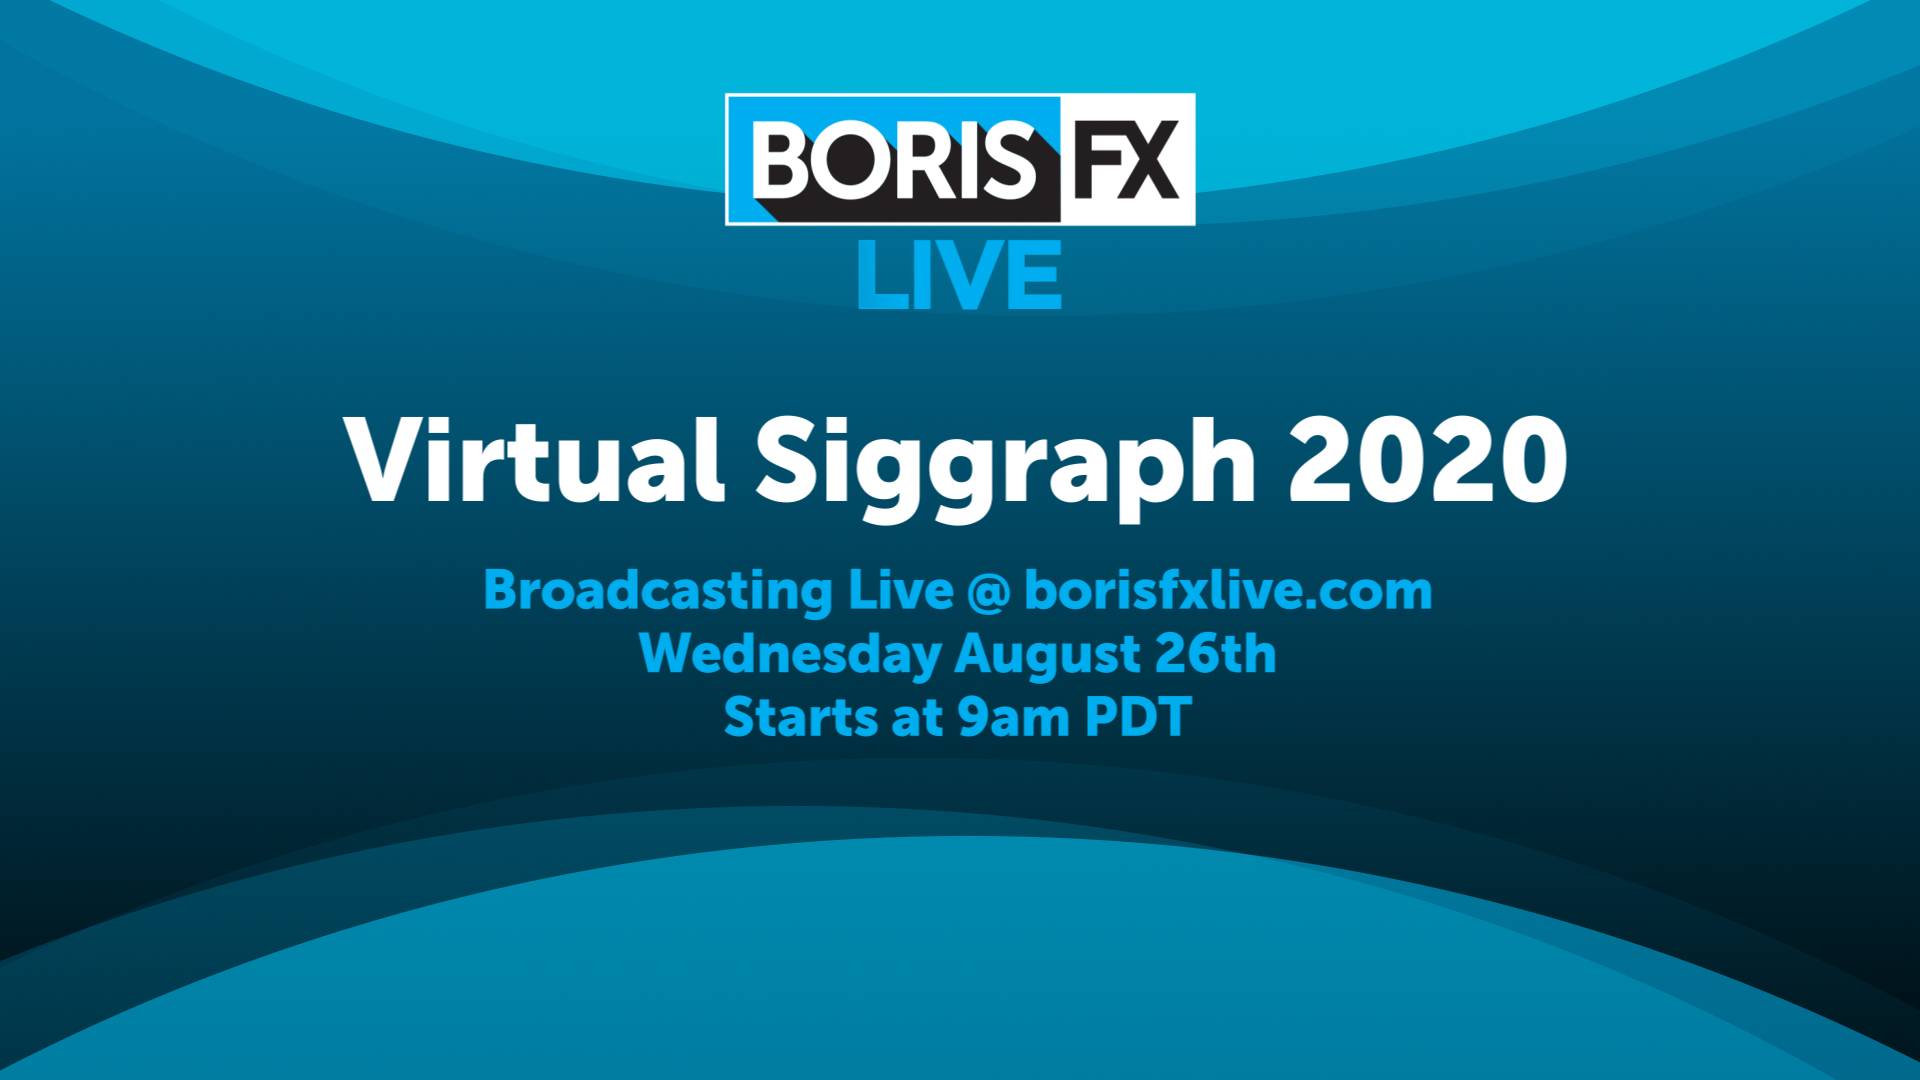 banner image for Boris FX Live at Virtual SIGGRAPH 2020